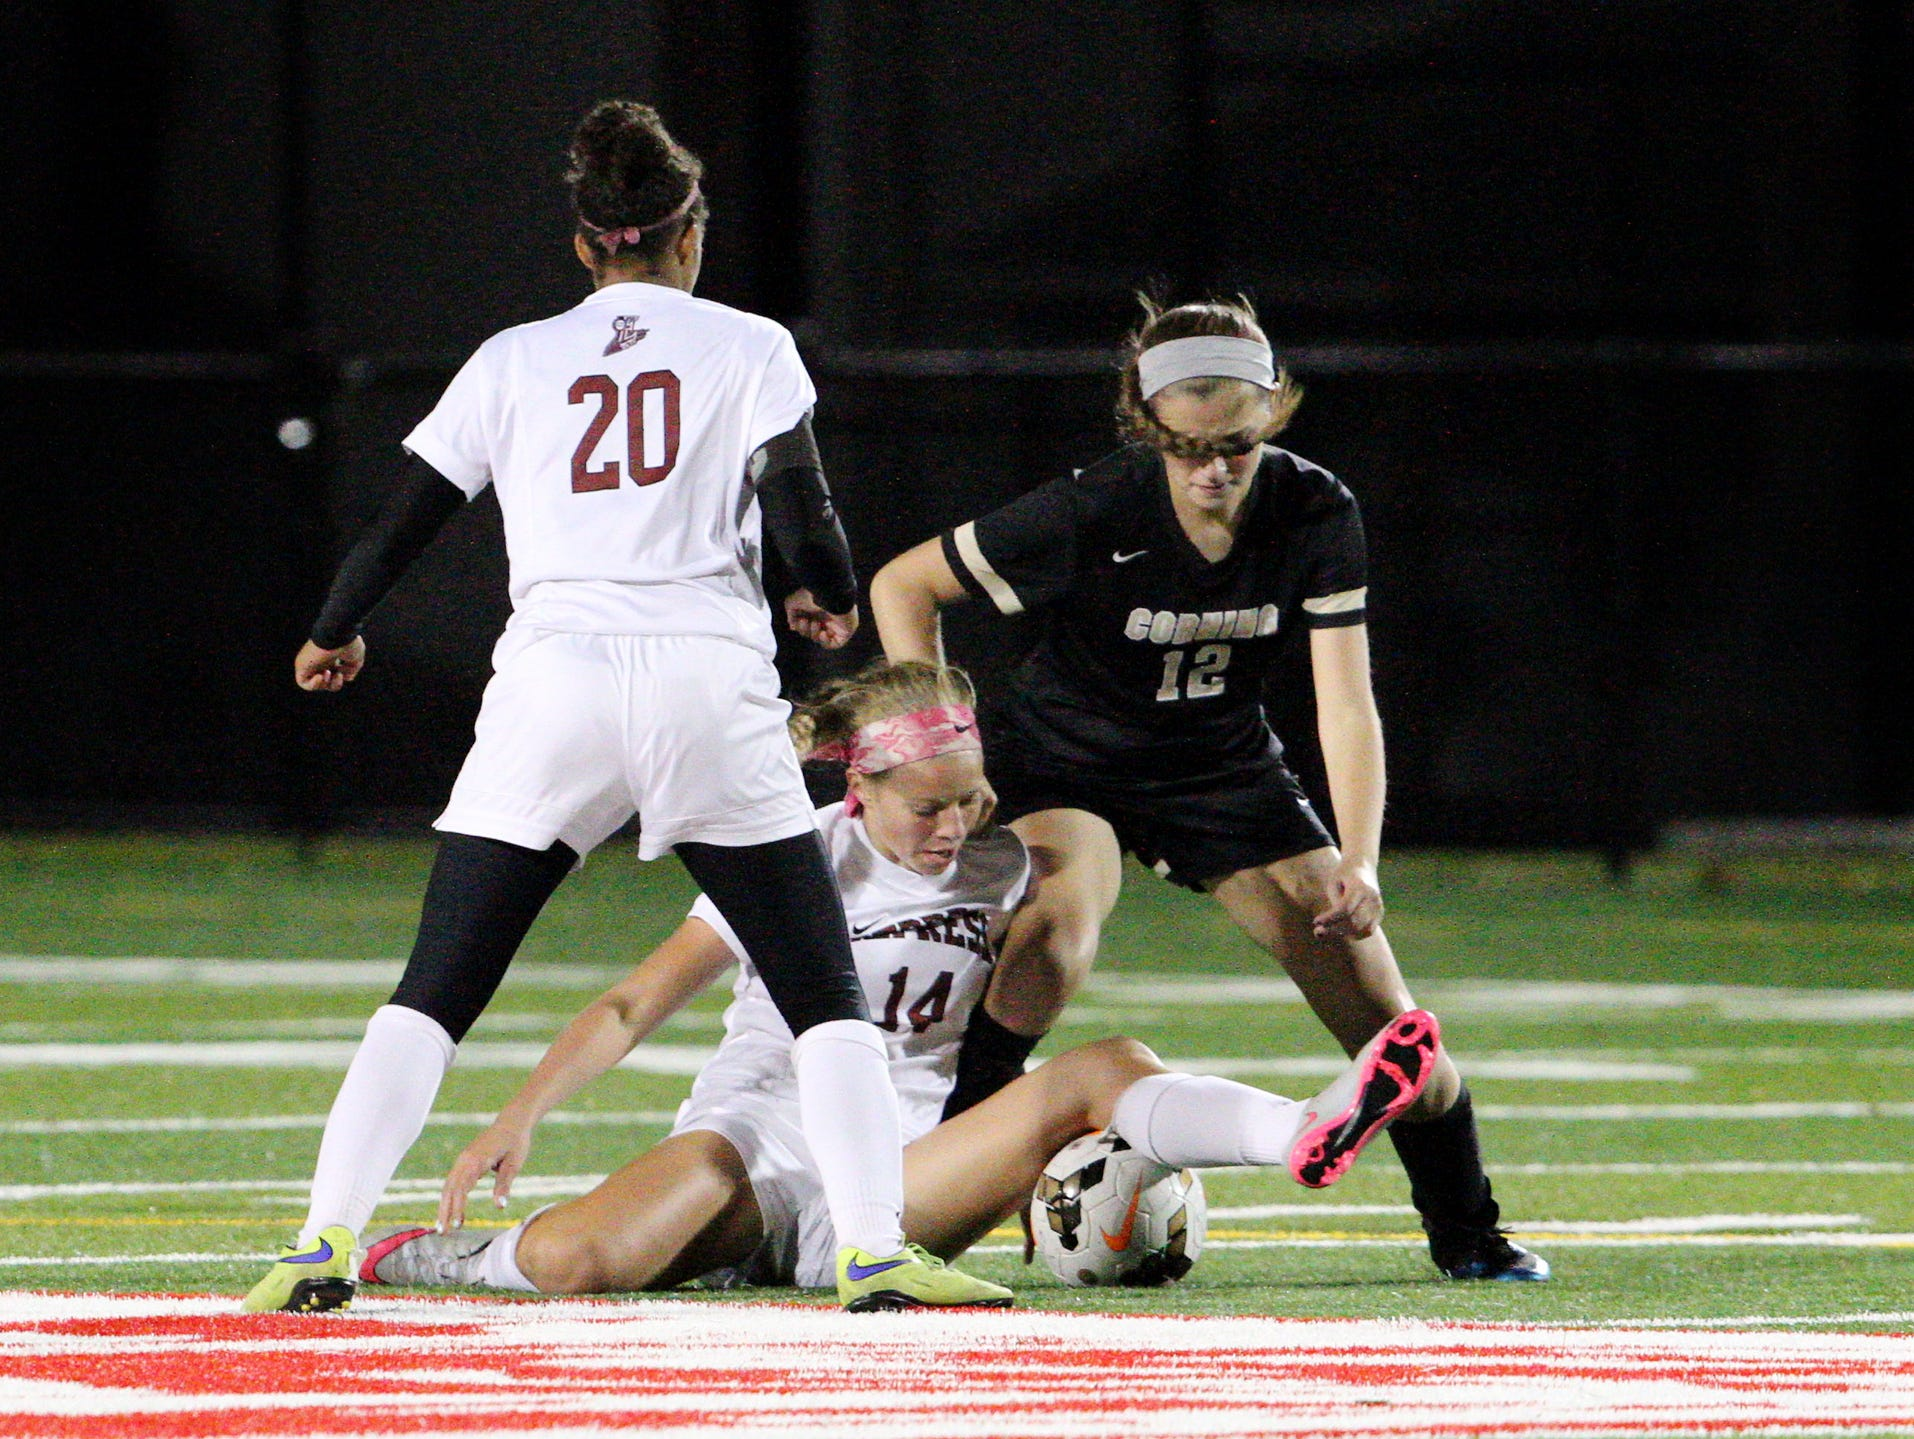 Elmira's Alexis Boorse fights over the ball with Corning-Painted Post's Liz Weinstein Friday during the Class AA Section 4 final.